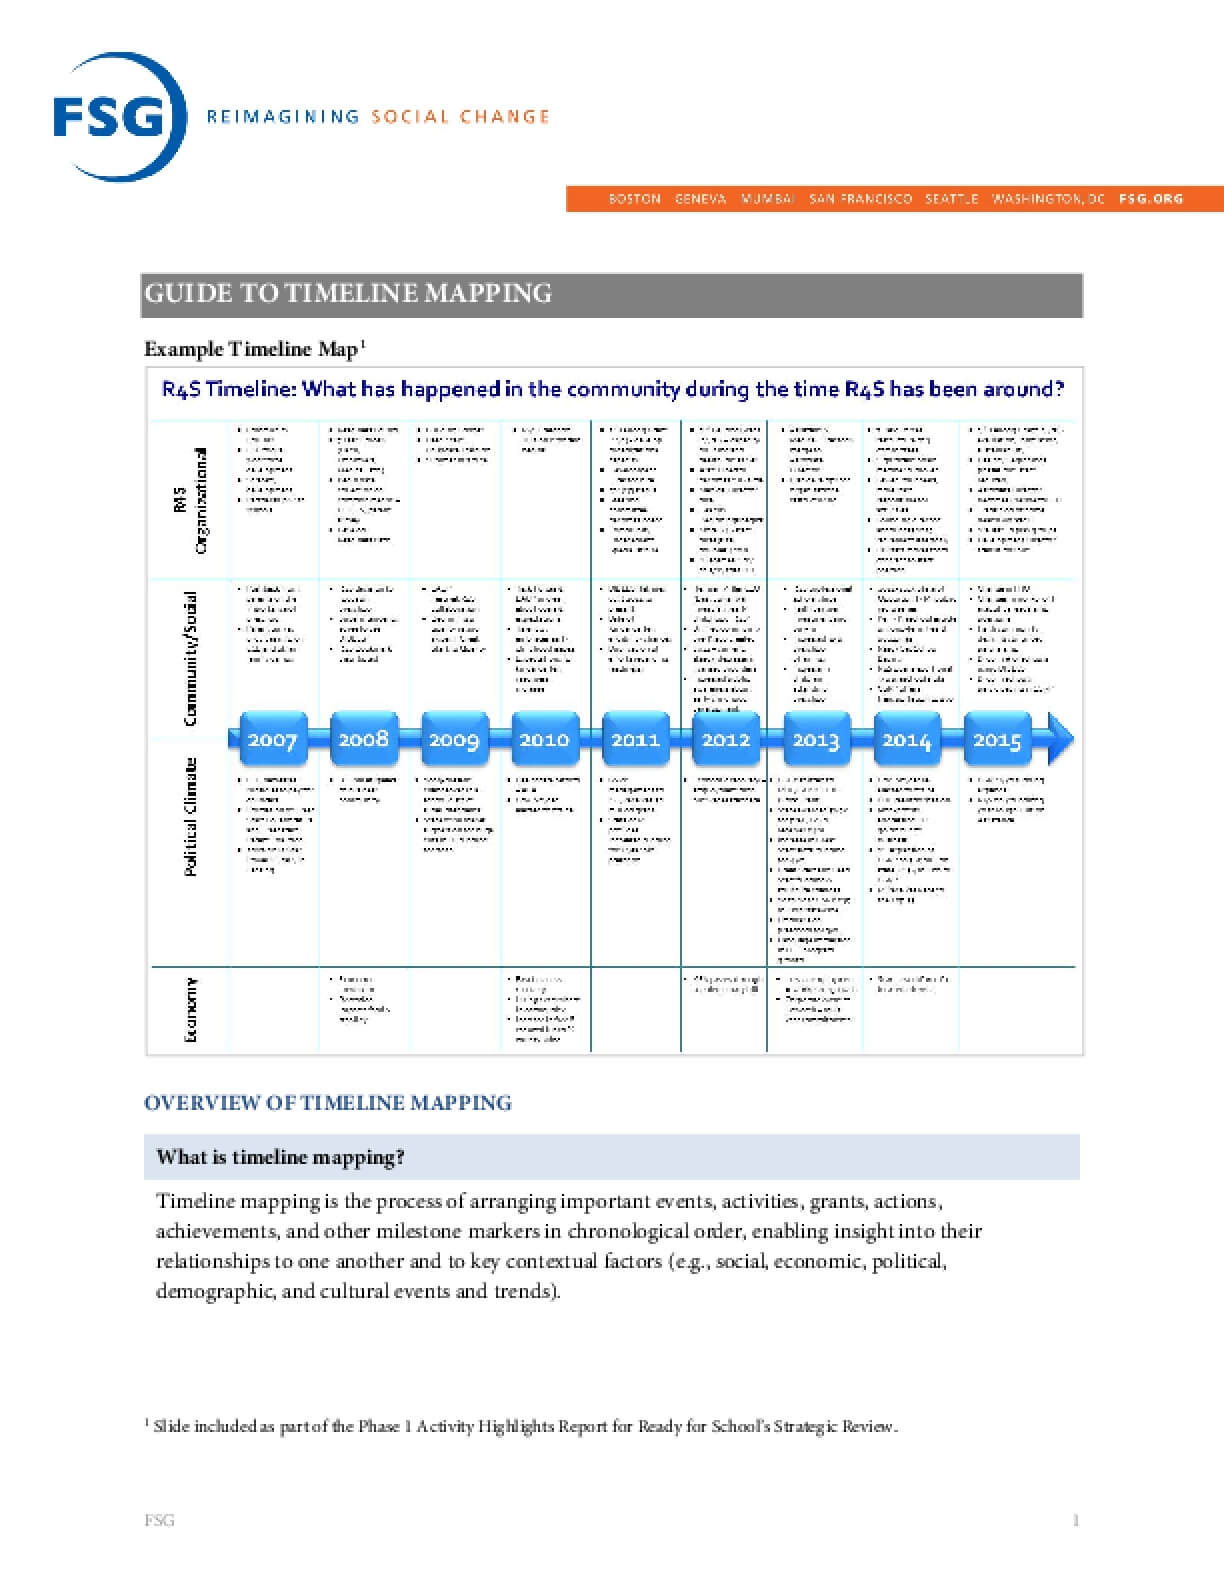 Guide to Timeline Mapping